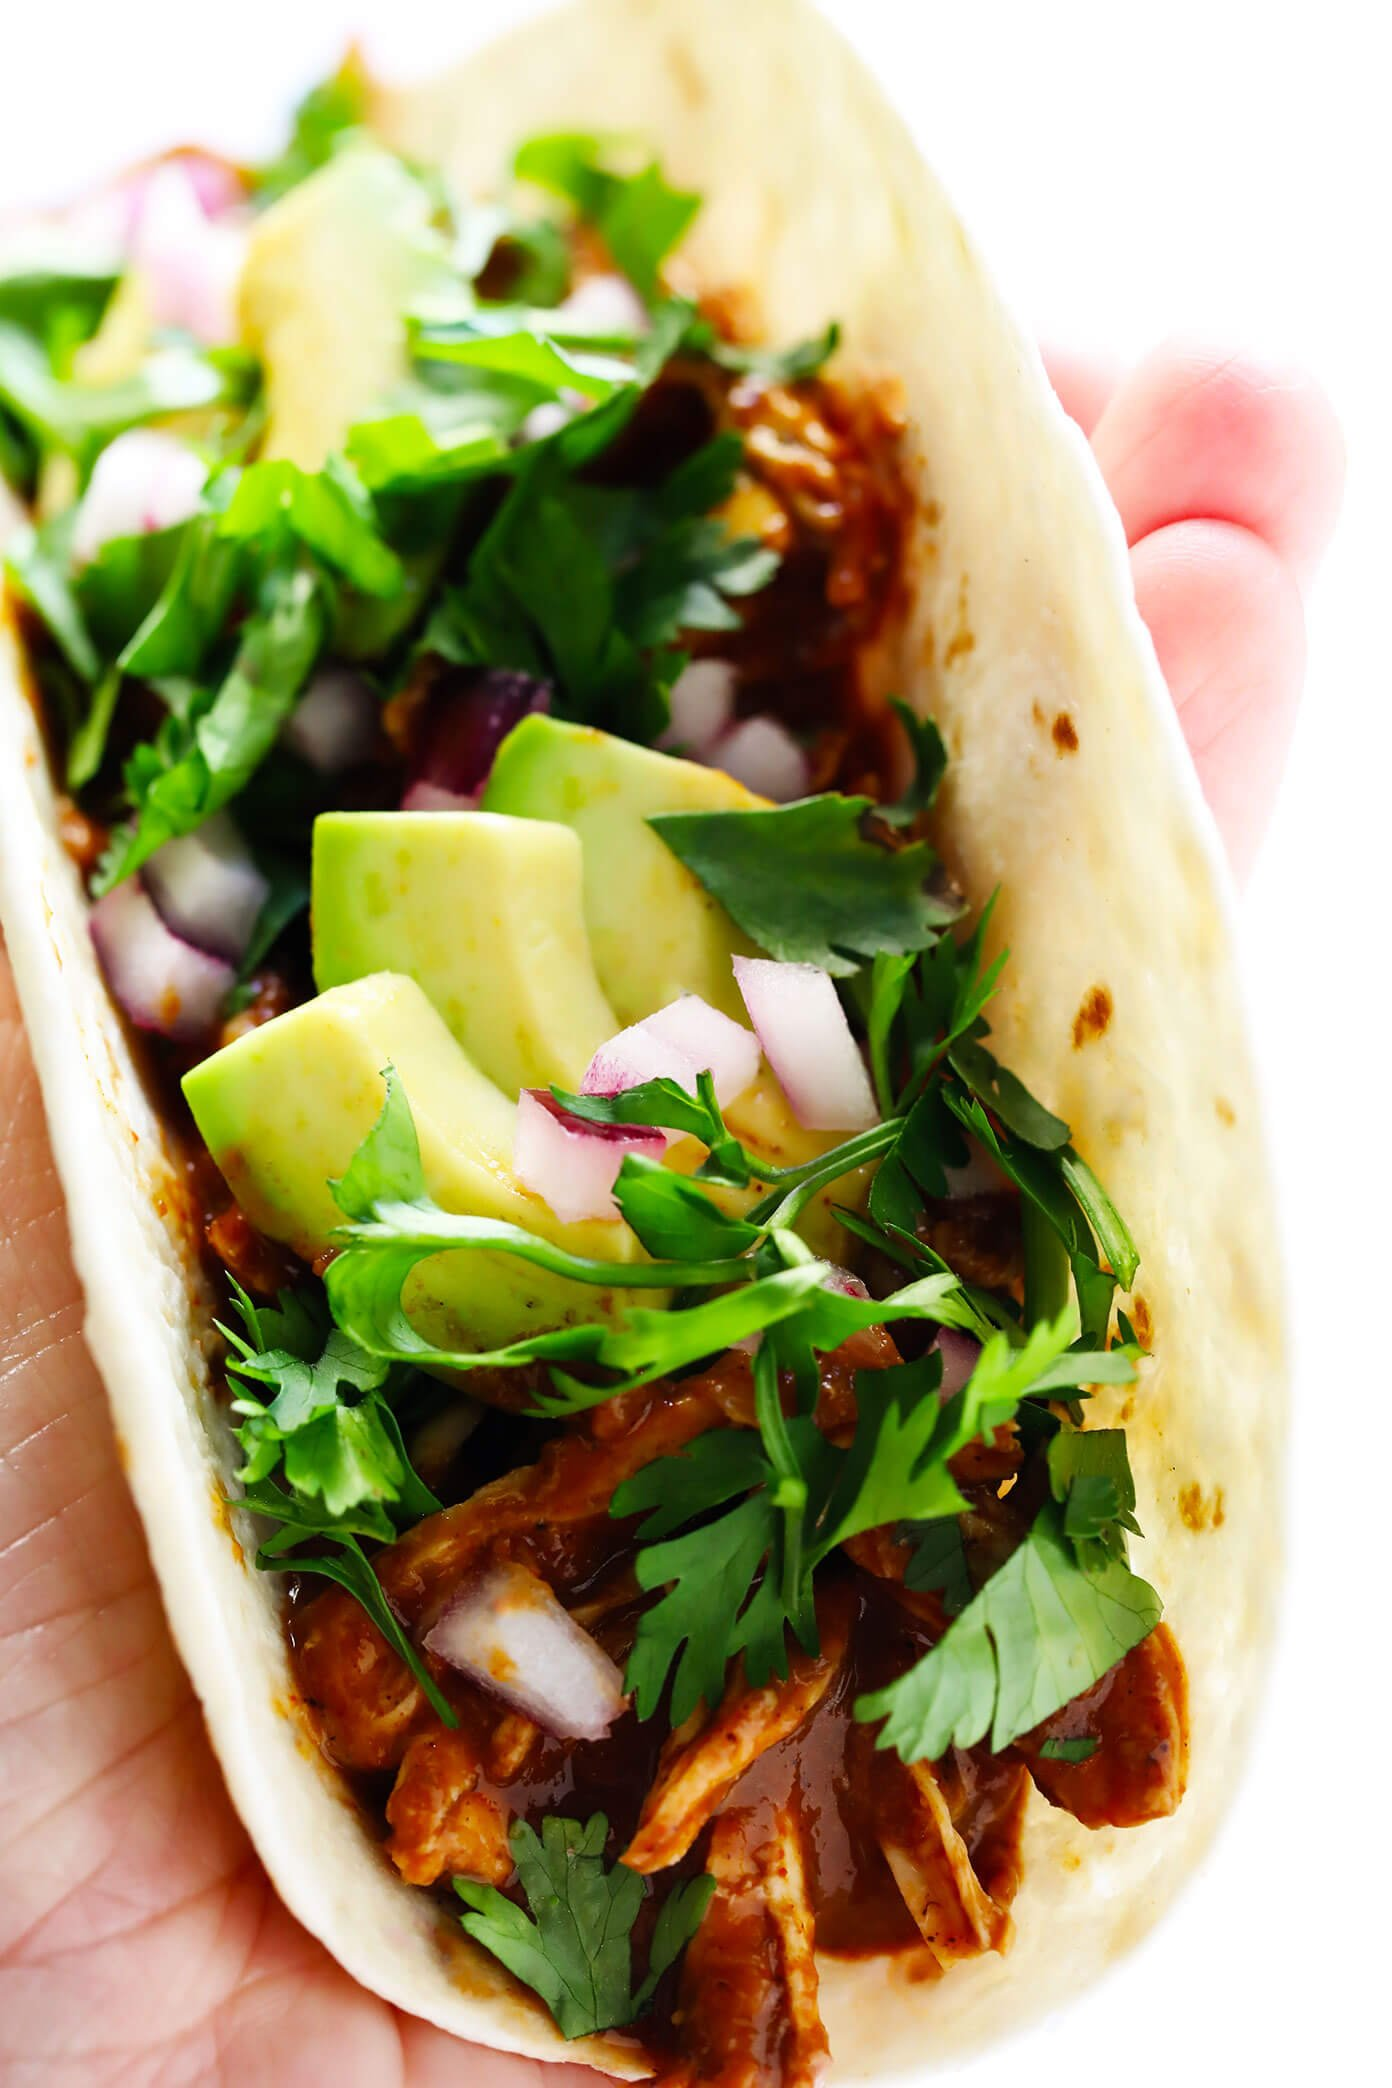 Easy Chicken Tacos with Mole Sauce Recipe